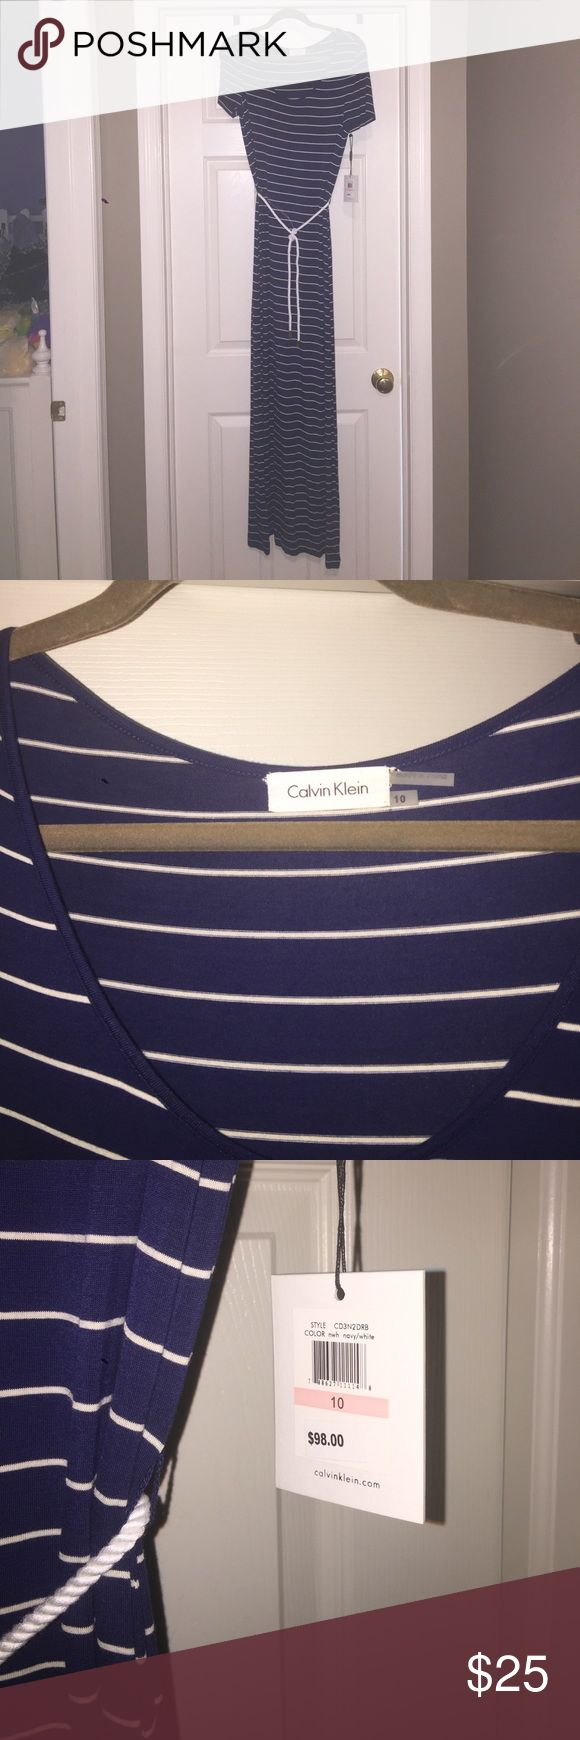 Calvin Klein Short Sleeve Dress Navy and white stripe. Brand new with tags. Size 10. Smoke free and pet free home. Calvin Klein Dresses Maxi